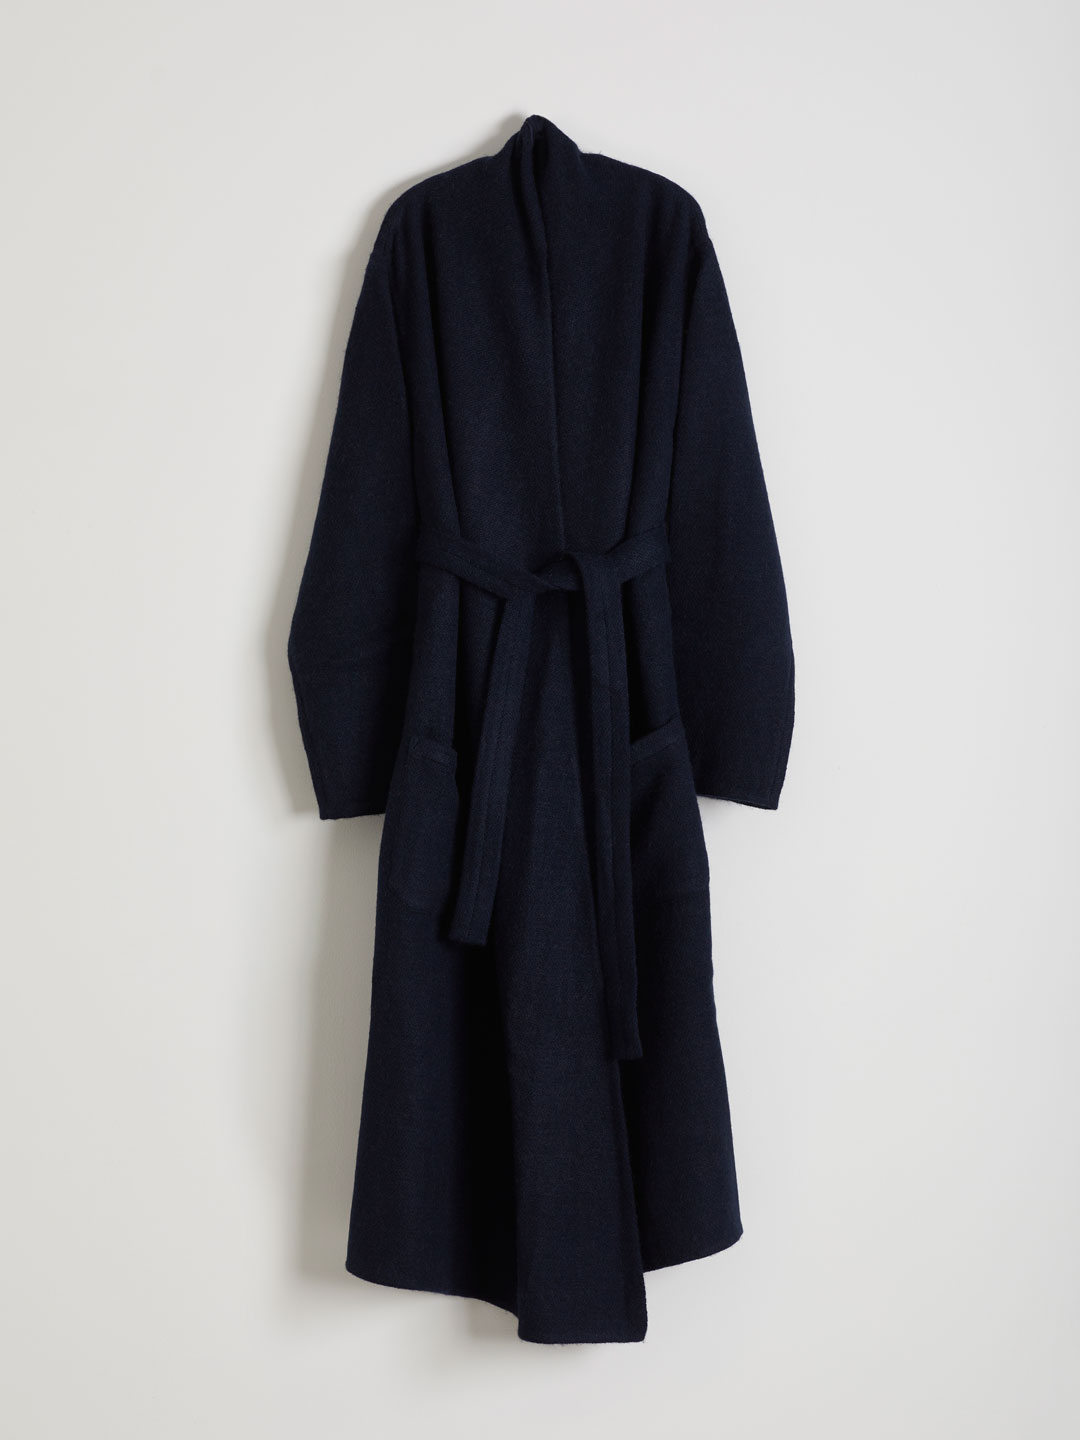 Nomad Coat - Navy